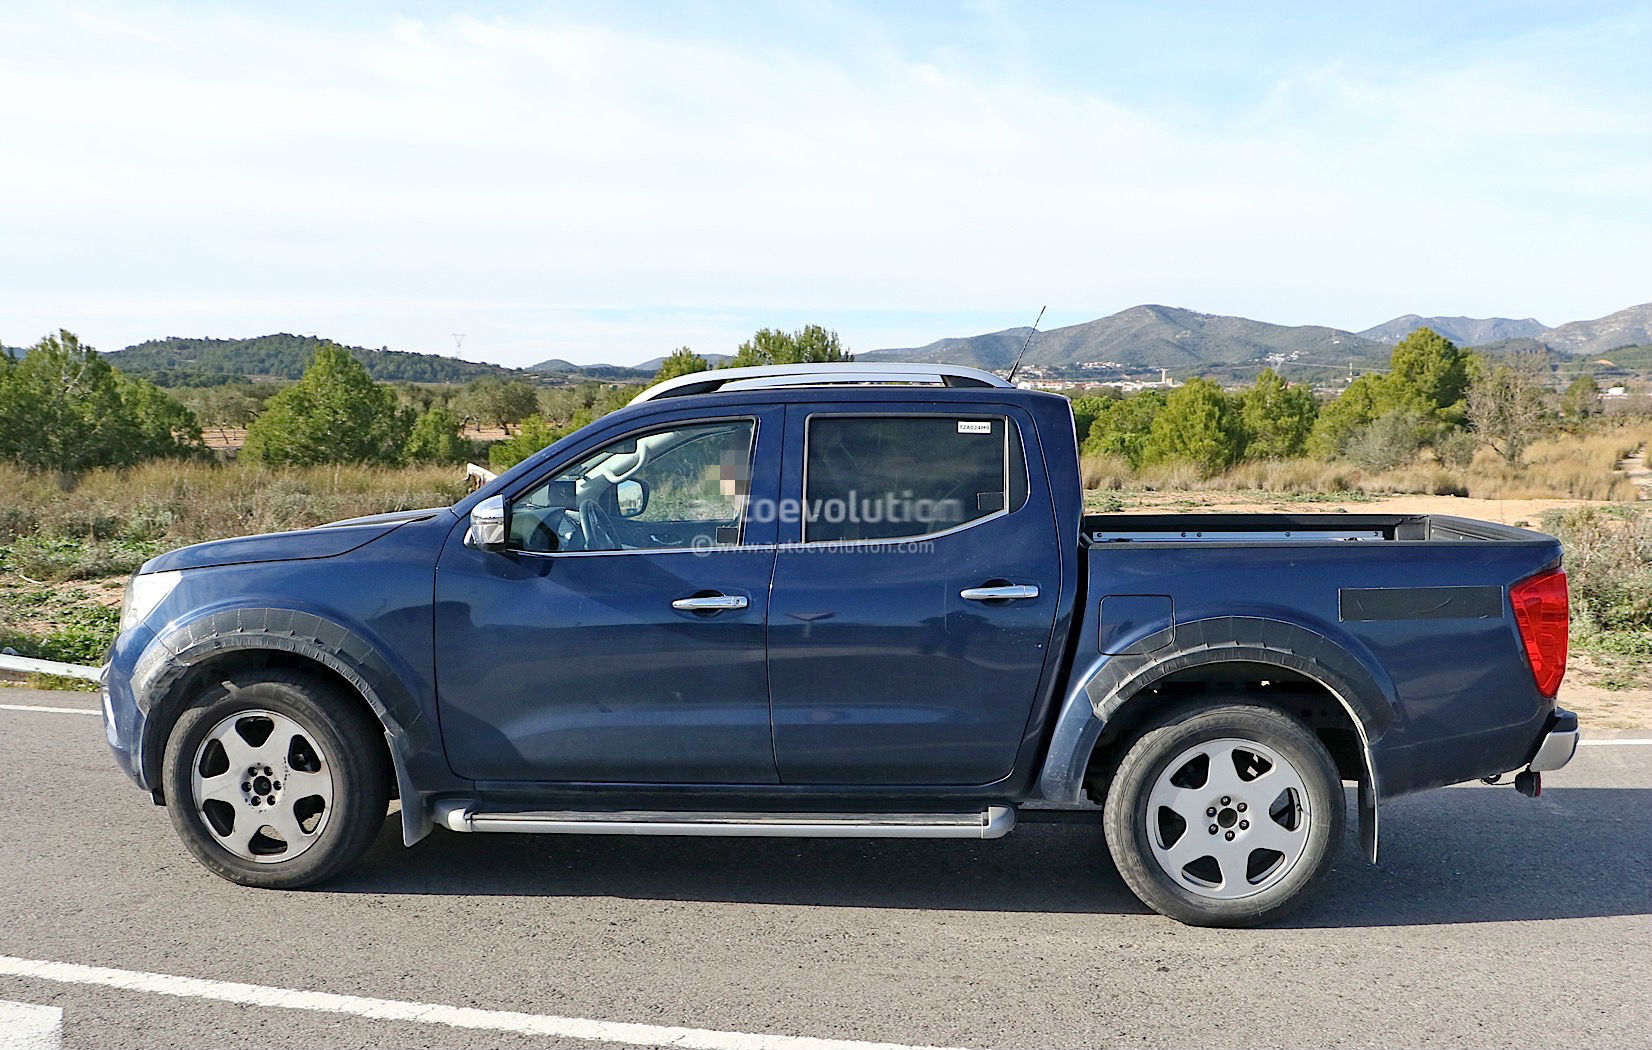 Alleged Mercedes Benz Pickup Mule Spotted For The First